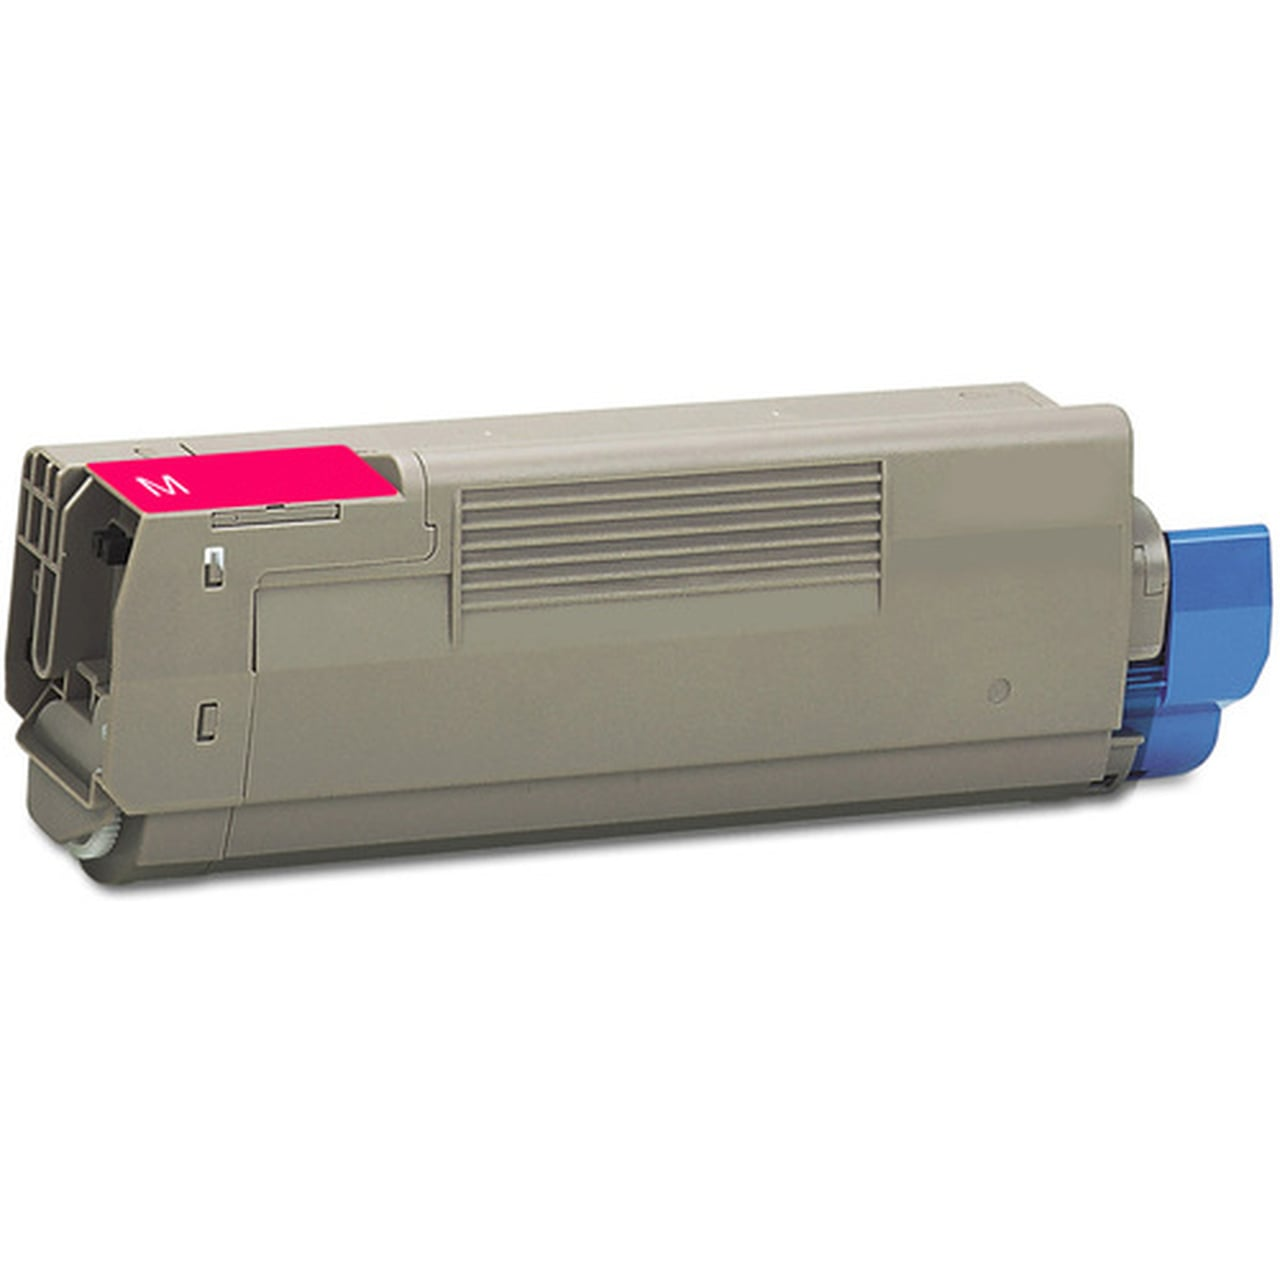 43324467 Toner Cartridge - Okidata New Compatible  (Magenta)